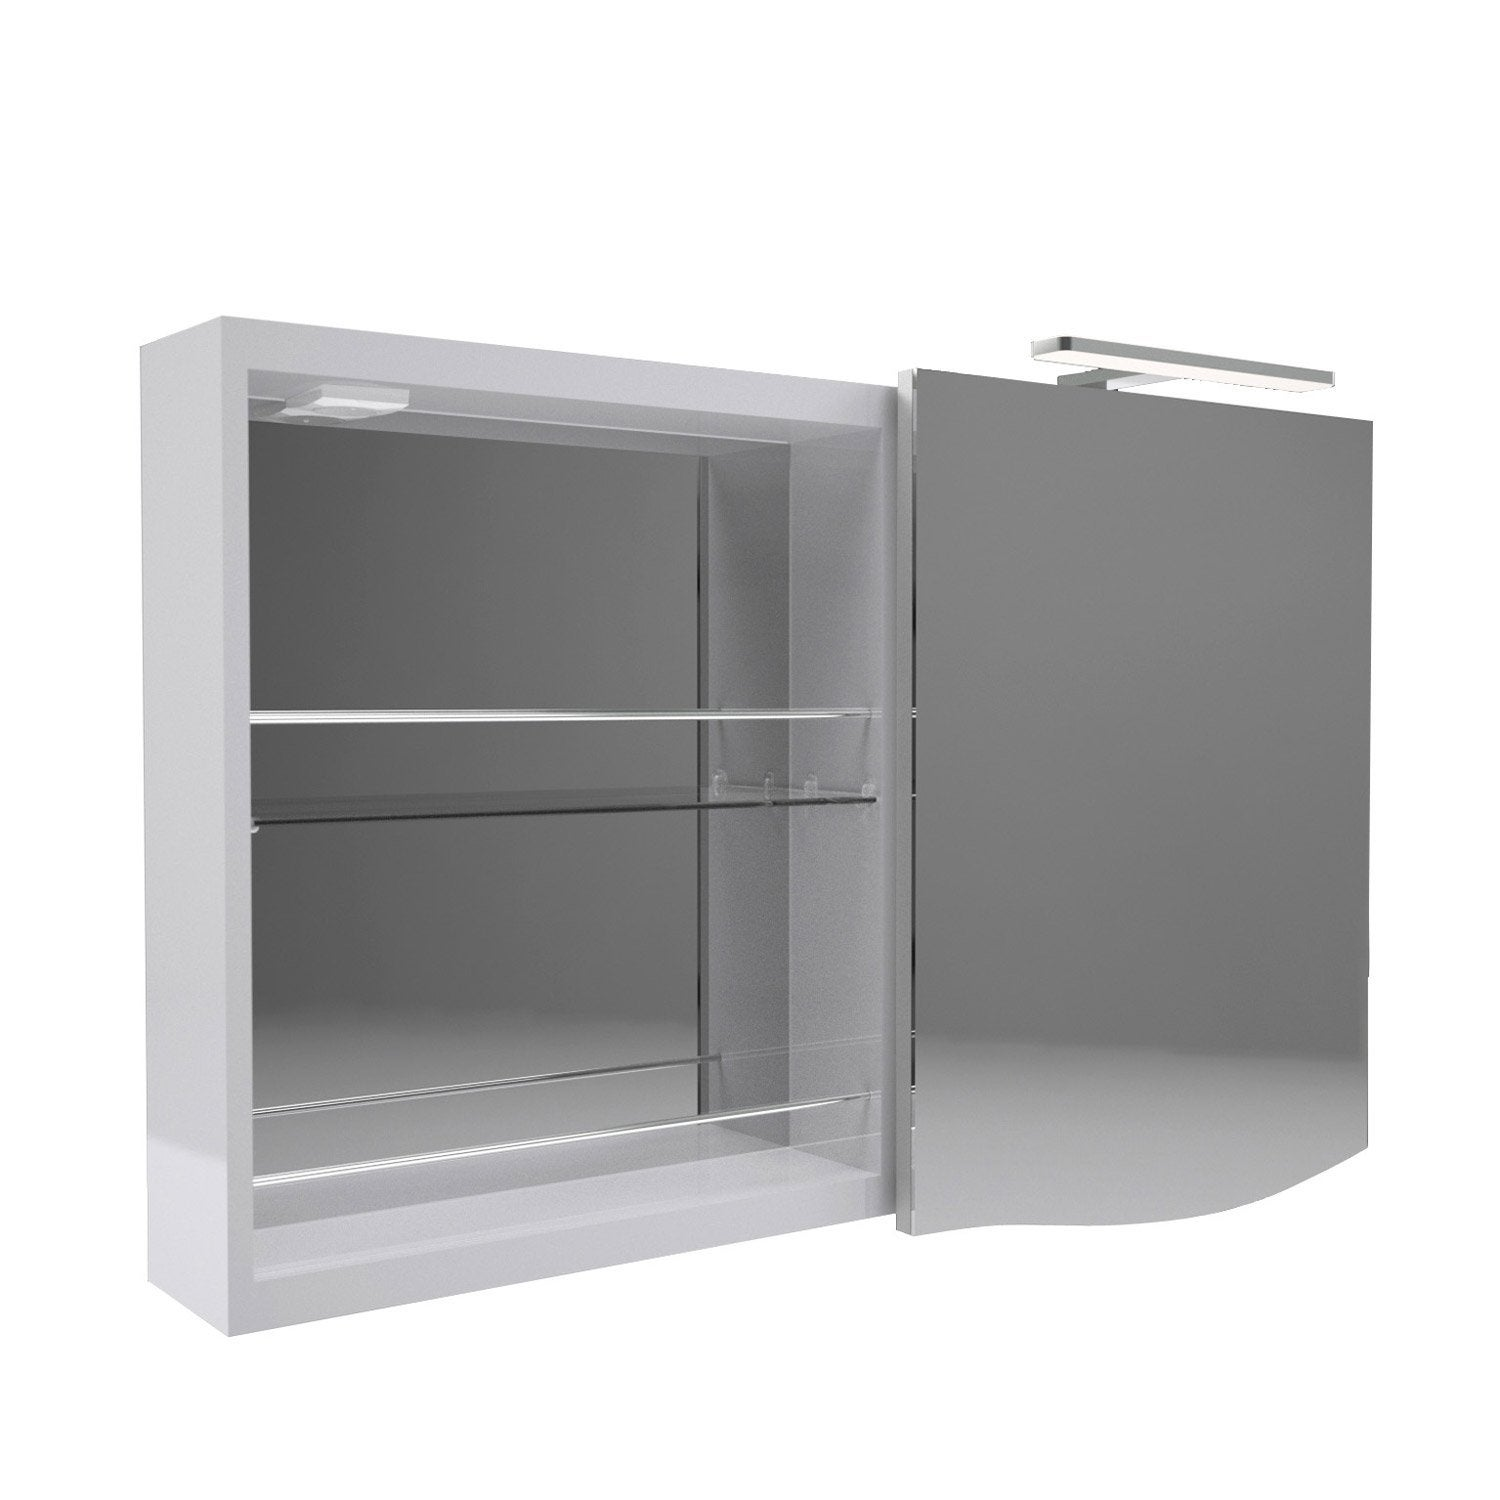 armoire de toilette lumineuse l 100 cm gris decotec. Black Bedroom Furniture Sets. Home Design Ideas